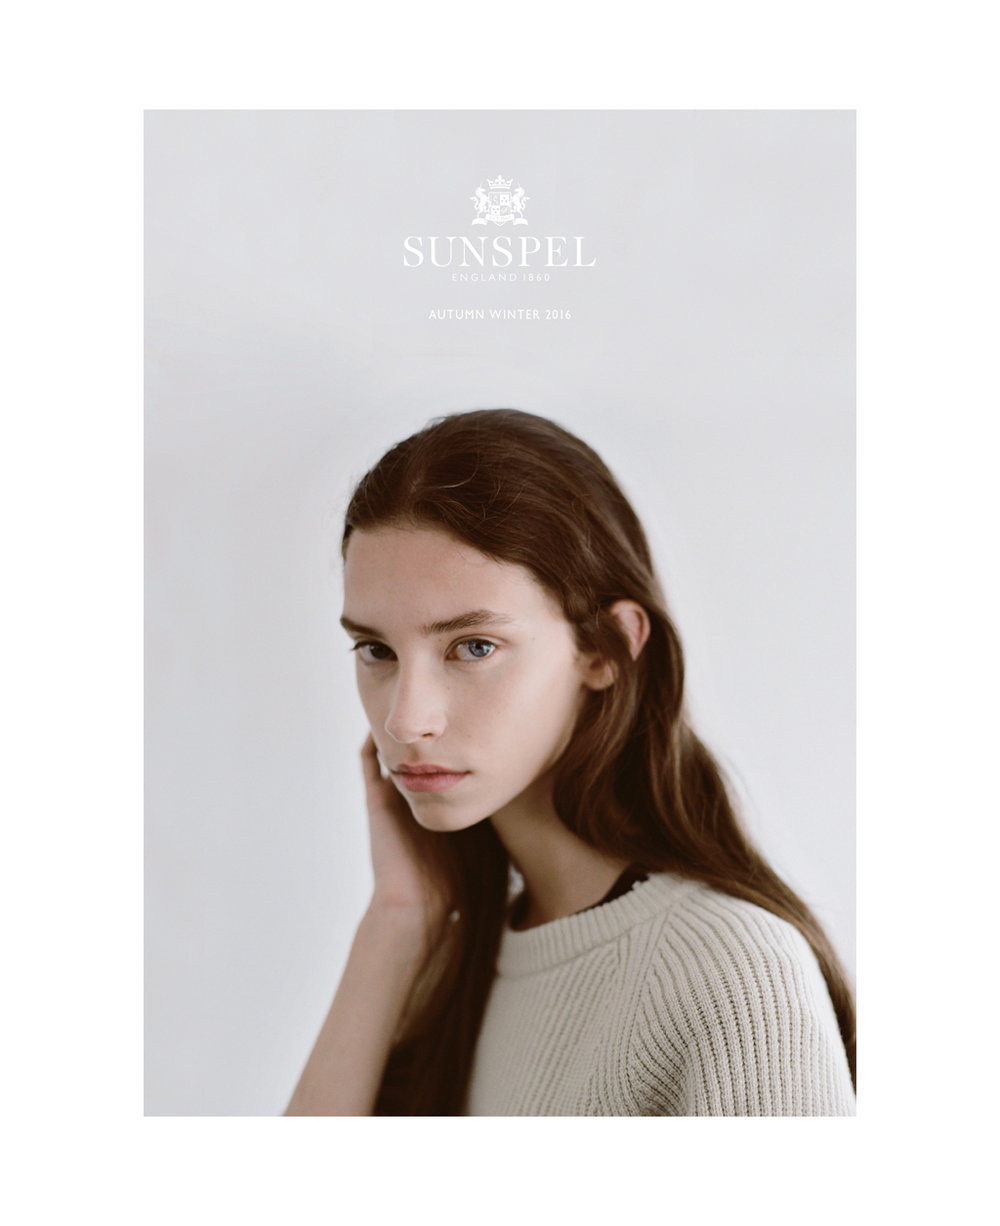 Sophia for Sunspel AW16.